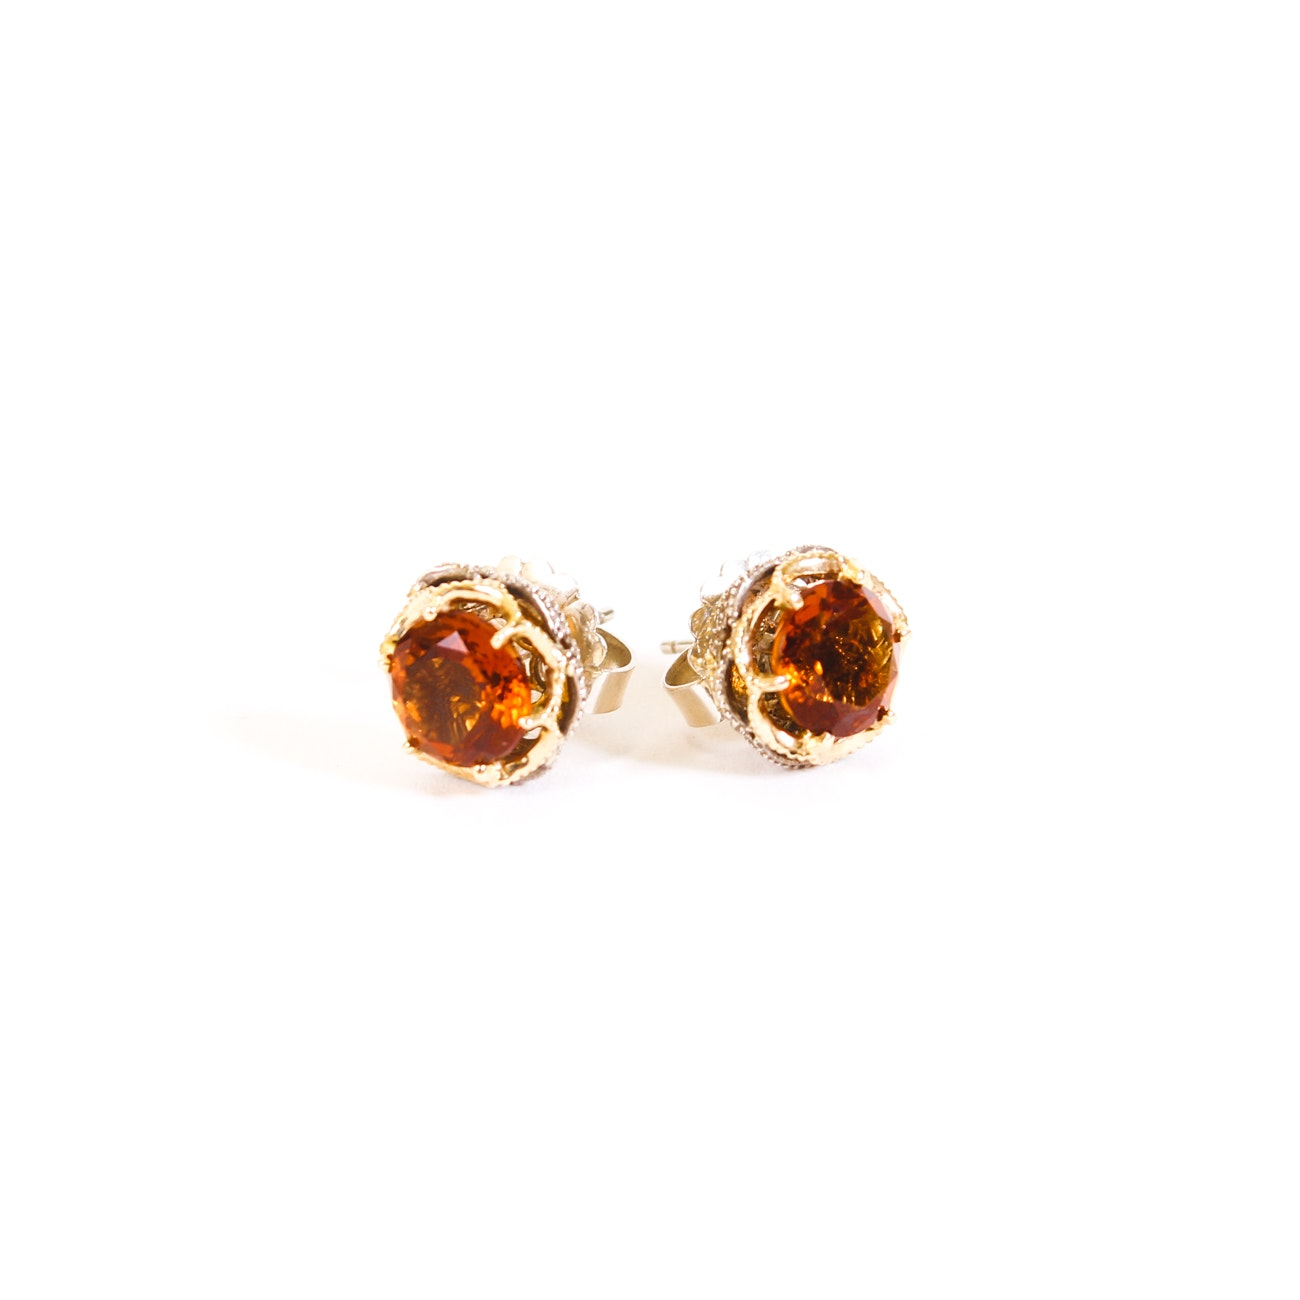 Tacori Sterling Silver Citrine Earrings